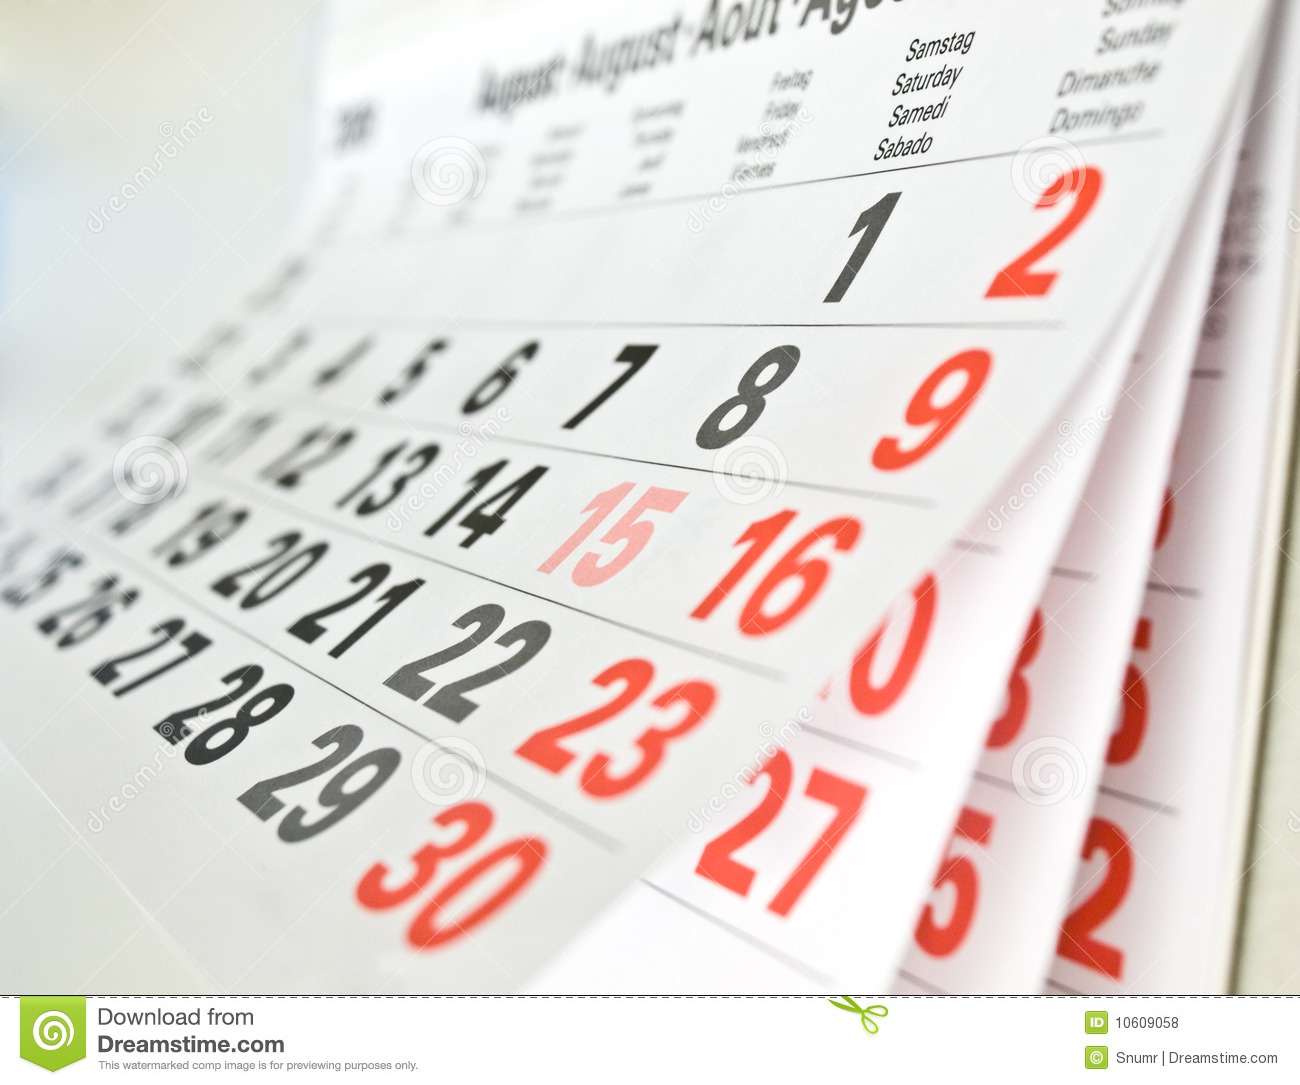 Calendar Page Royalty Free Stock Photos - Image: 10609058: www.dreamstime.com/royalty-free-stock-photos-calendar-page...